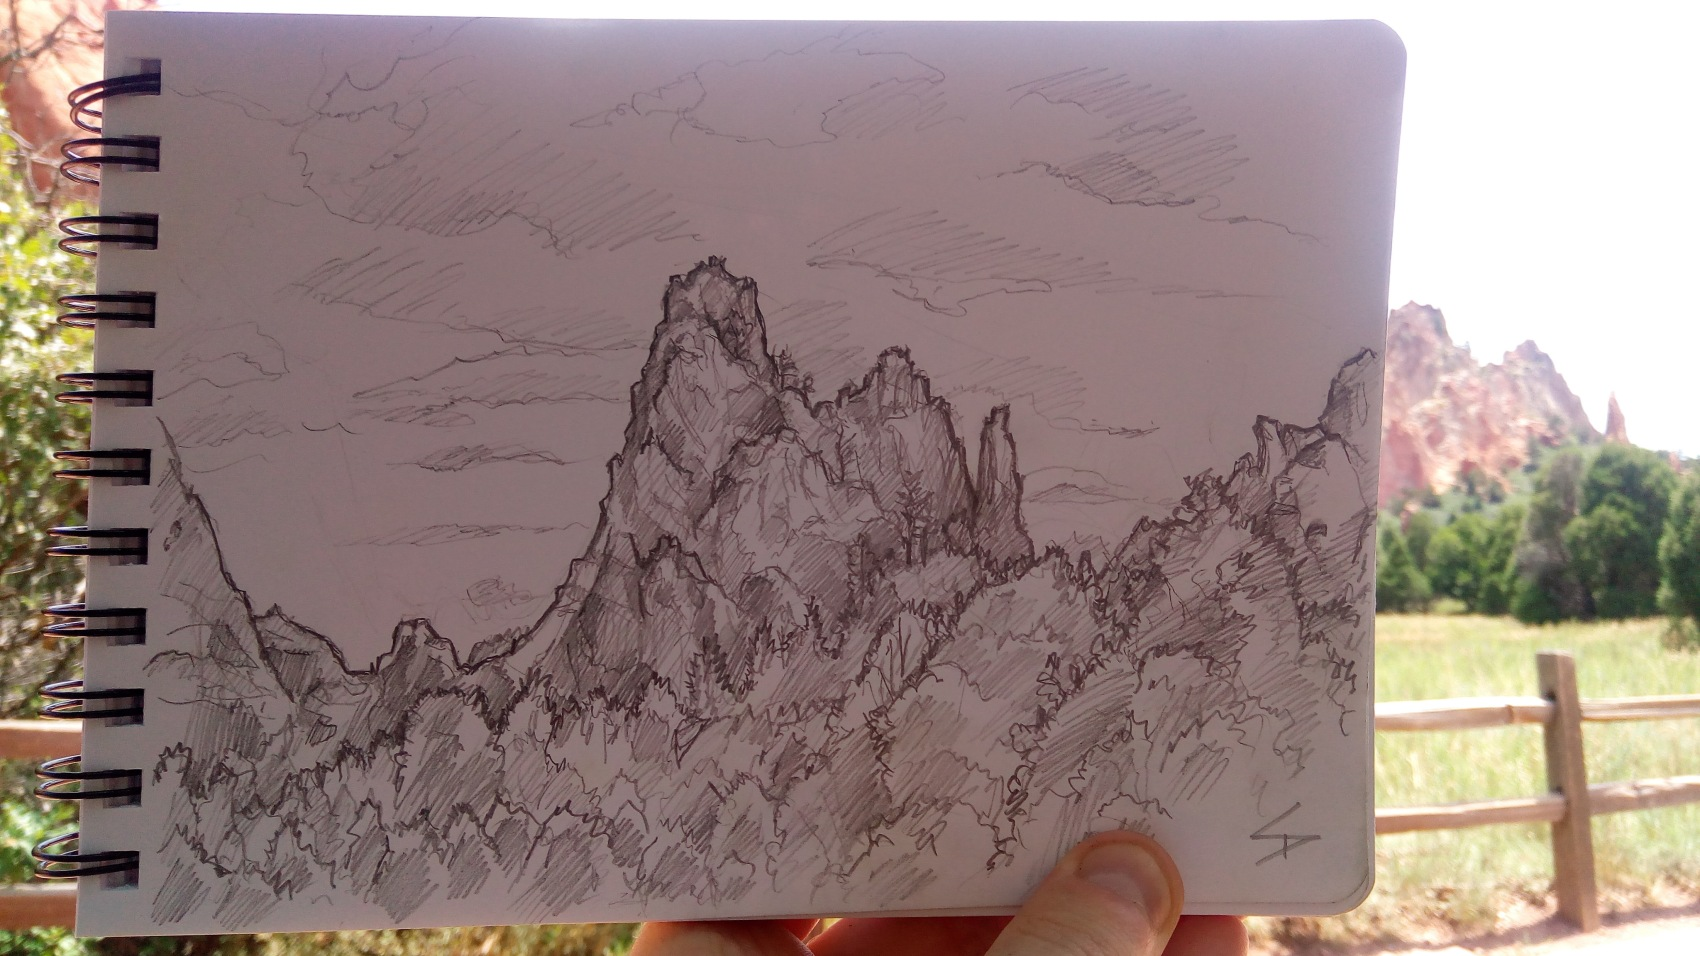 Nature Photo Art - Colorado Springs, Colorado, US. 'Garden of the Gods.' Trying to find shelter from the sun, to sketch, was tough, but in the end I managed to jam my art stool under a small tree, for a little shade. sketchbookexplorer.com @davidasutton @sketchbookexplorer Facebook.com/davidanthonysutton #gardenofthegods #colorado #coloradosprings #unitedstates #USA #travel #travelblog #art #sketching #nature #wildwest